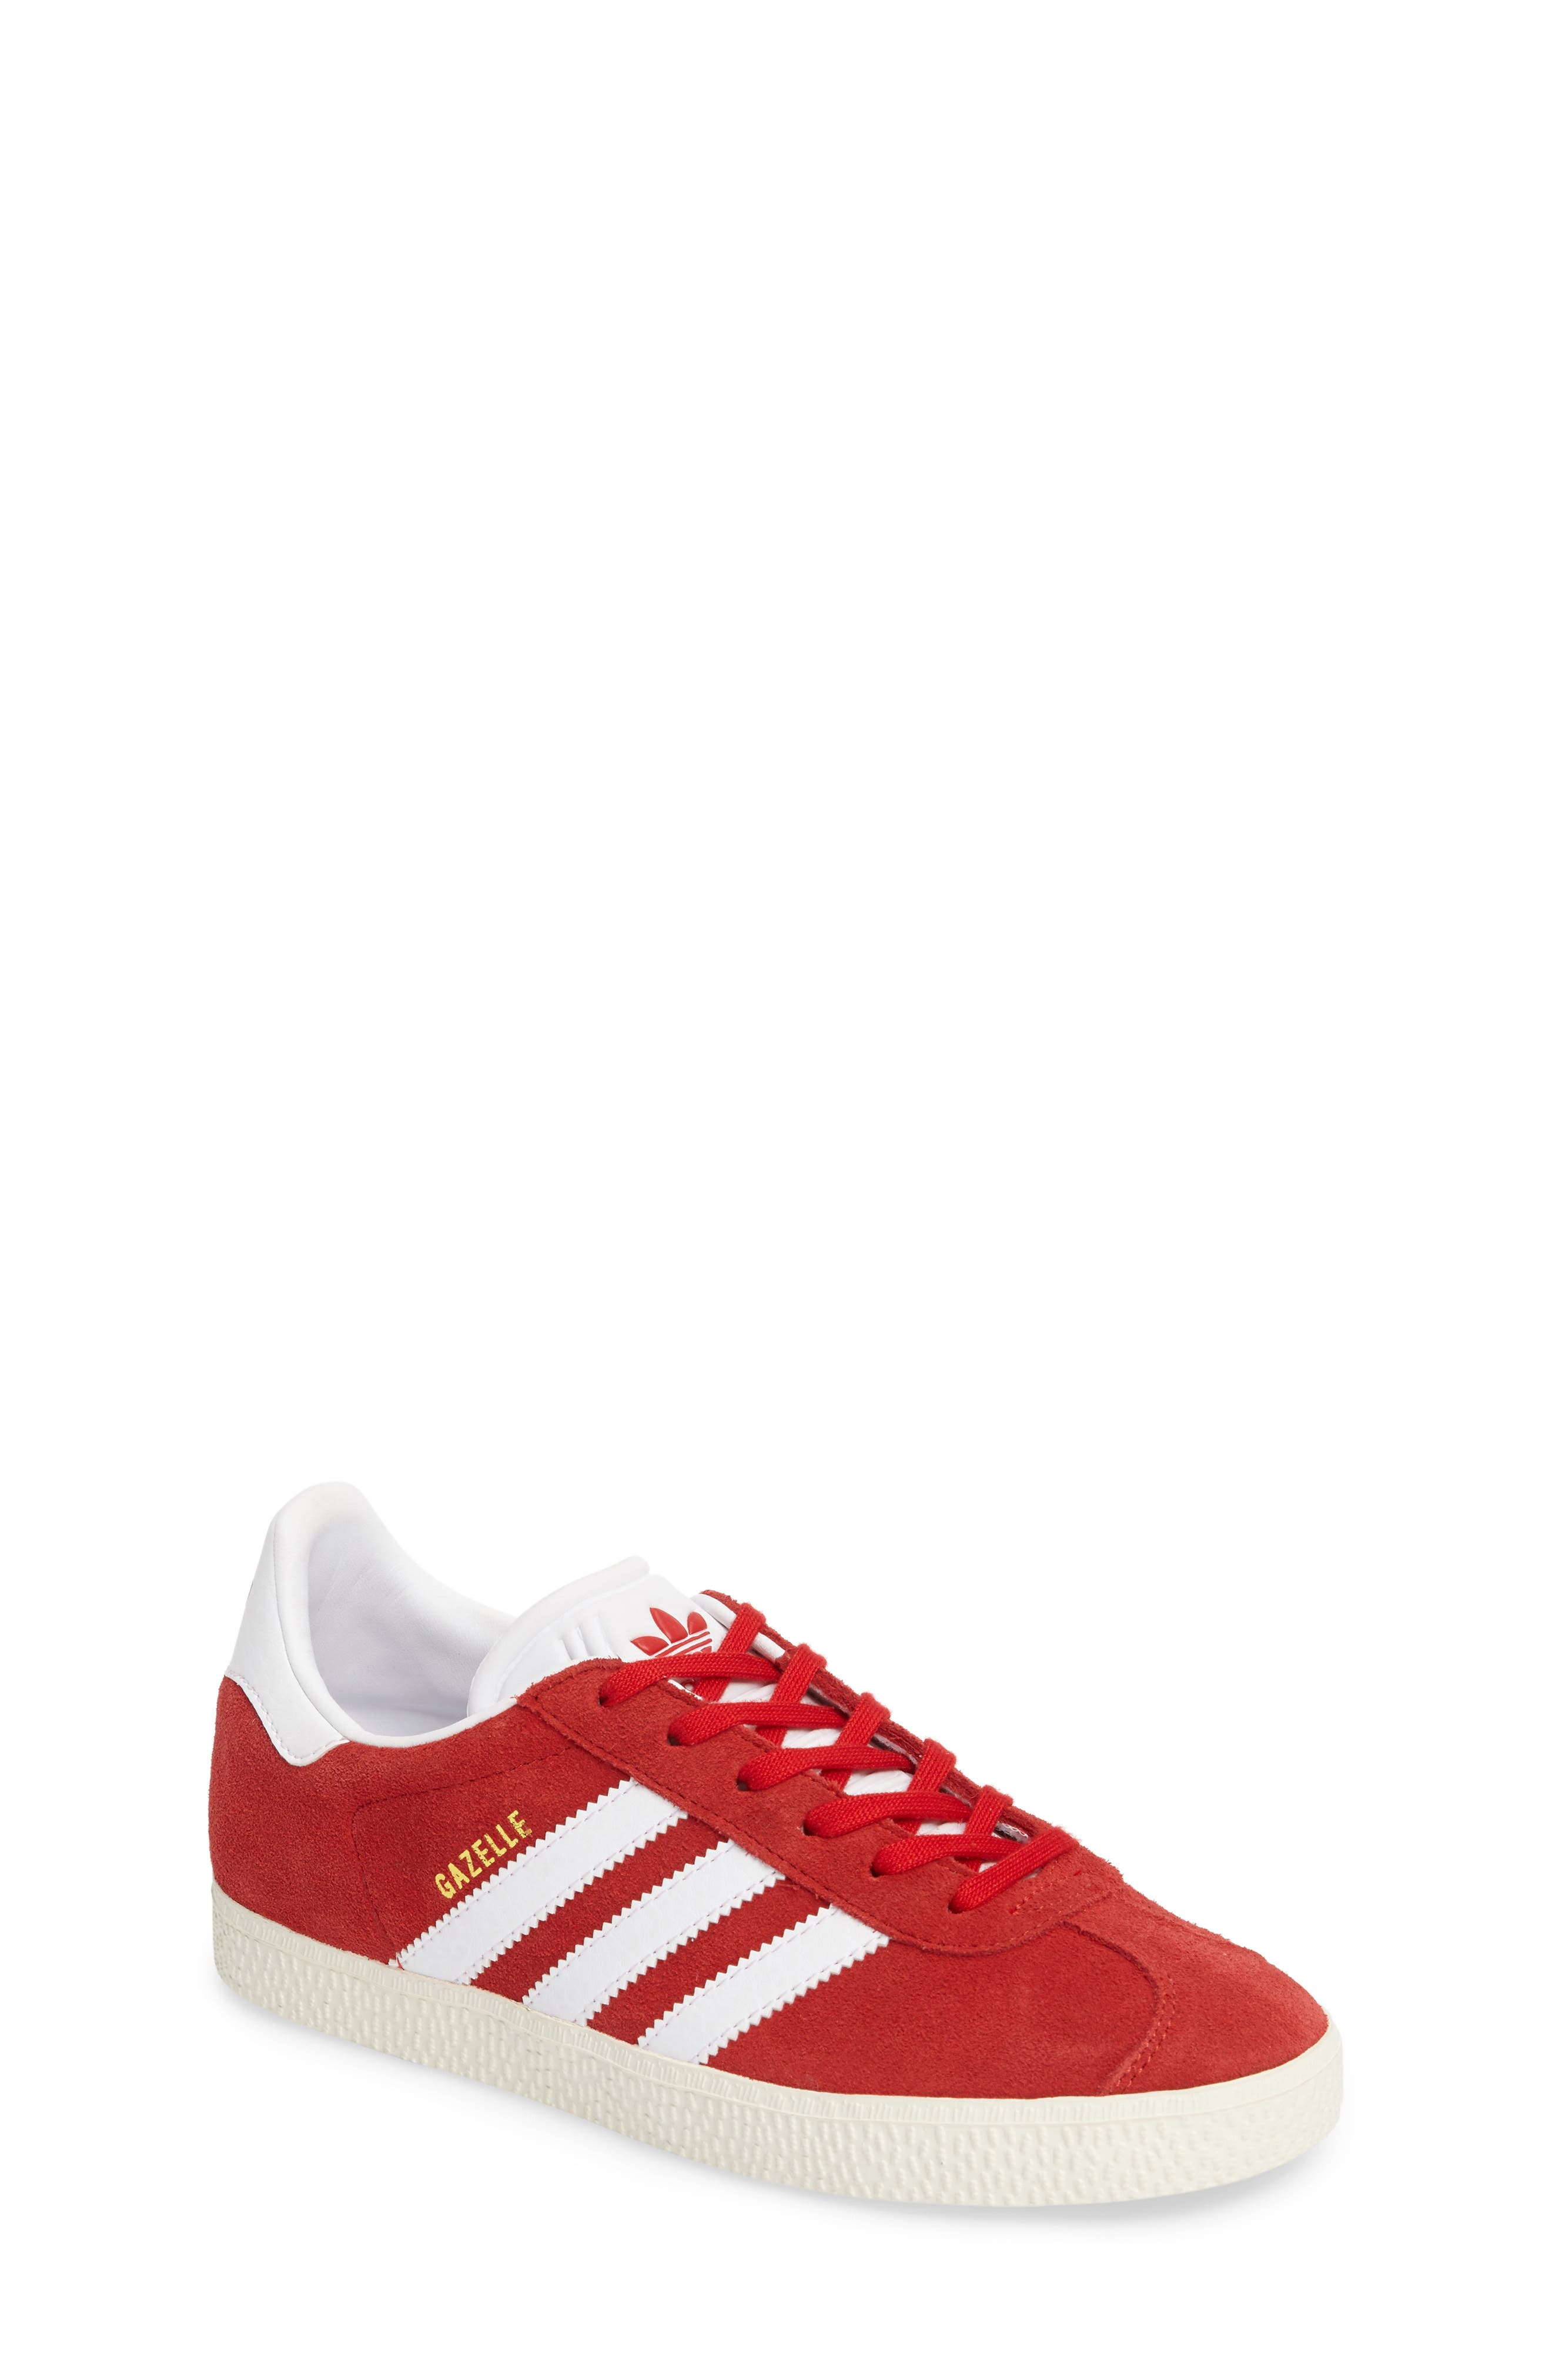 Main Image - adidas Gazelle Sneaker (Toddler & Little Kid)